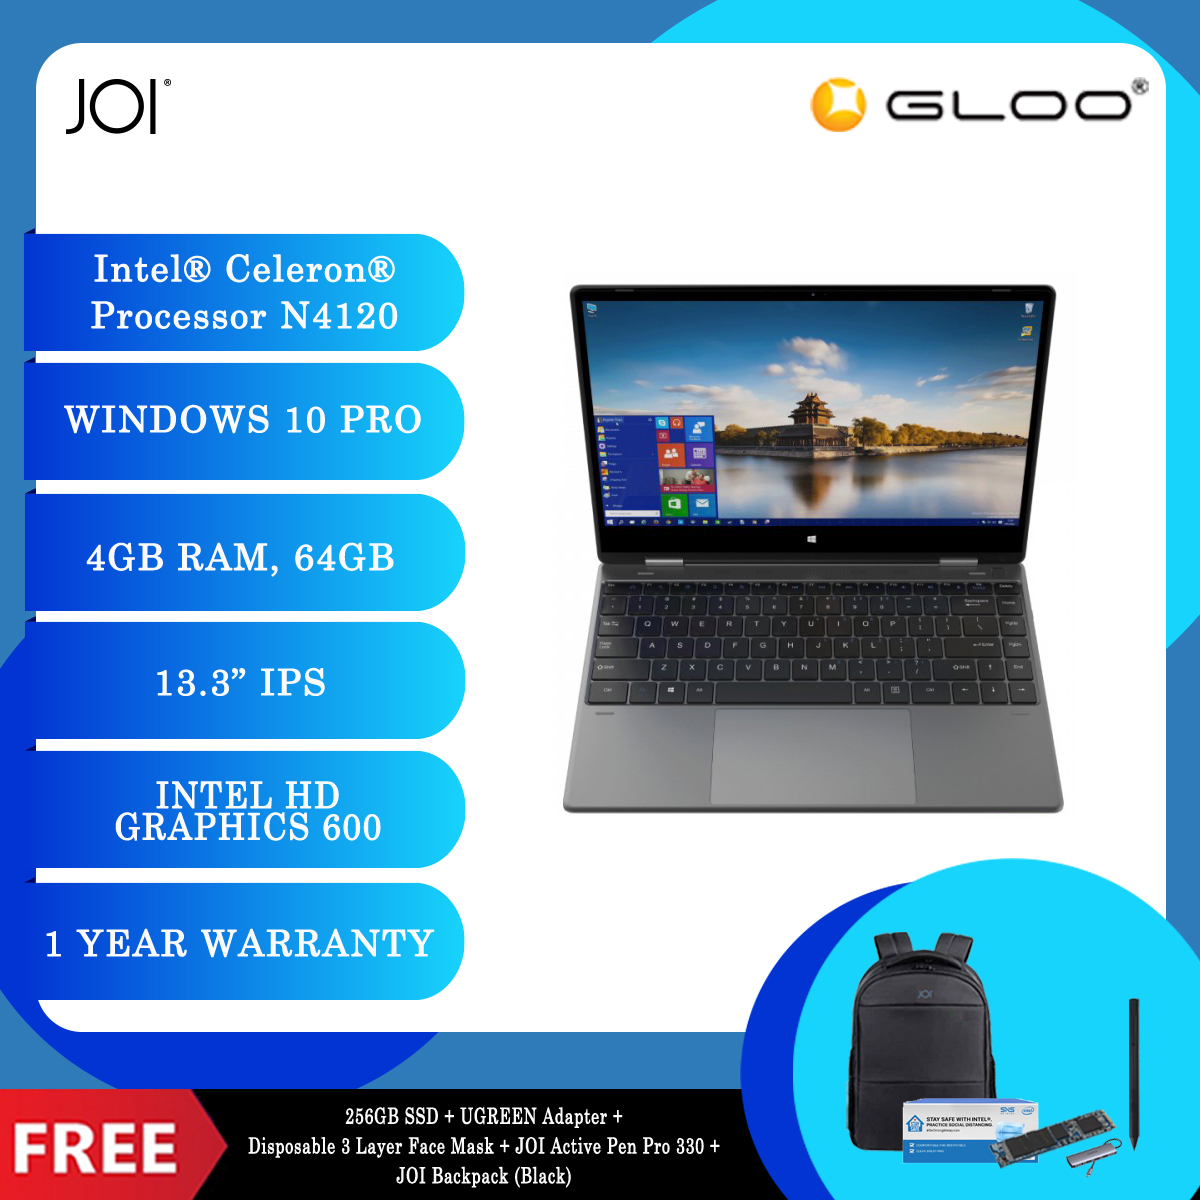 """JOI Book Touch 330 Pro (N4120,4GB+64GB,13.3"""" FHD,W10Pro) + 256GB SSD + UGREEN USB-C To 3*USB 3.0 A+HDMI+VGA+RJ45 Gigabit+SD/TF+AUX3.5mm+PD Converter Adapter + Disposable 3 Layer Face Mask + JOI Active Pen Pro 330 + JOI Backpack (Black) [BPPJOI0330MSBK]"""